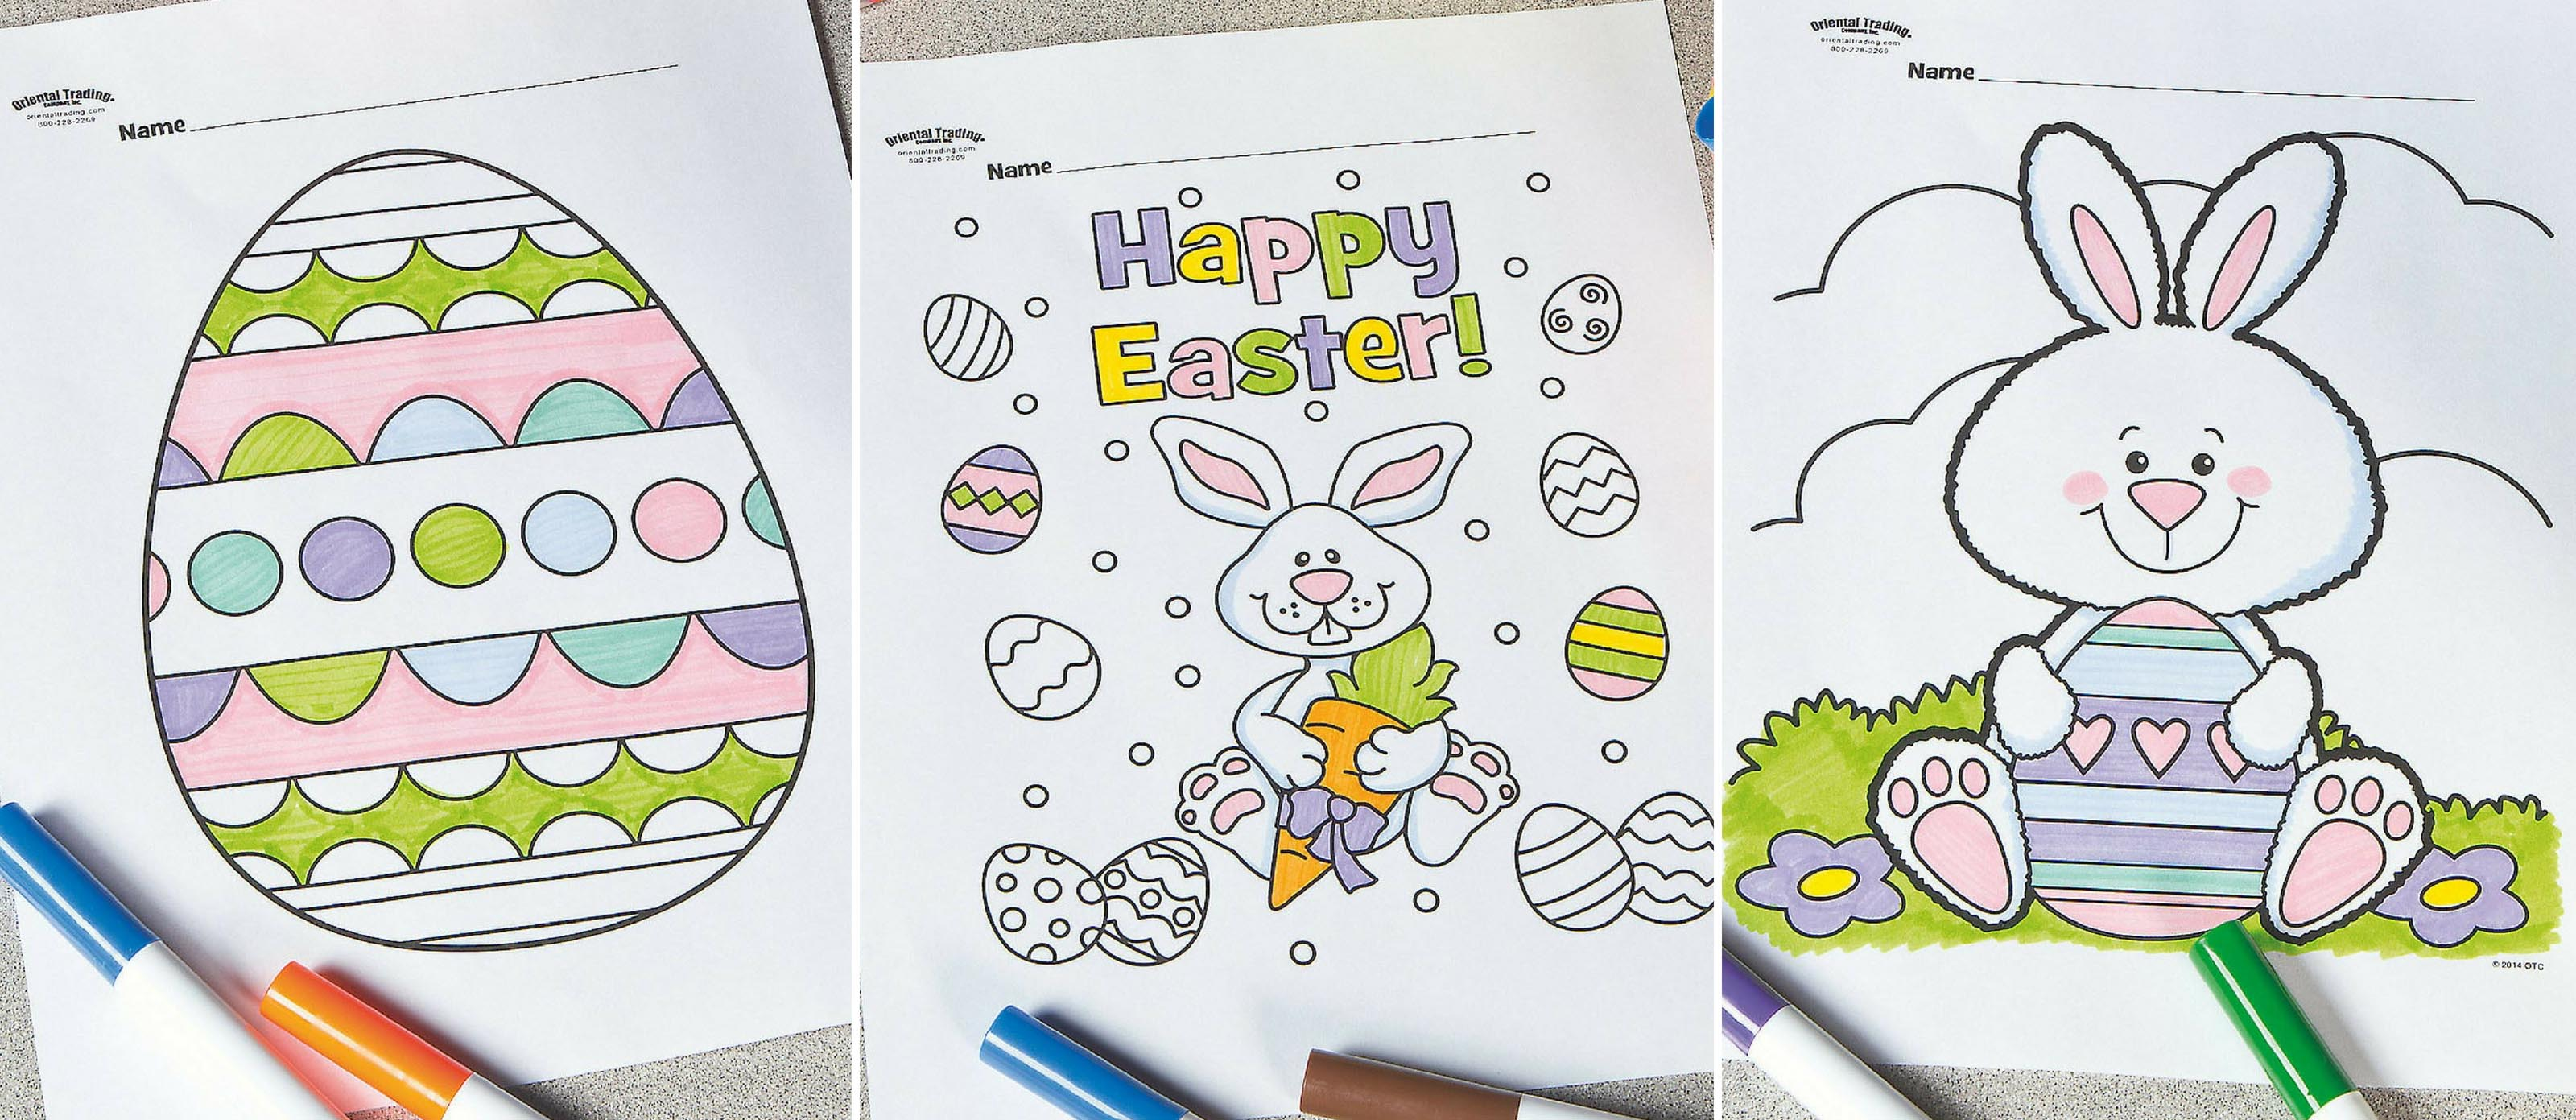 Free Printable Easter Coloring Pages Fun365